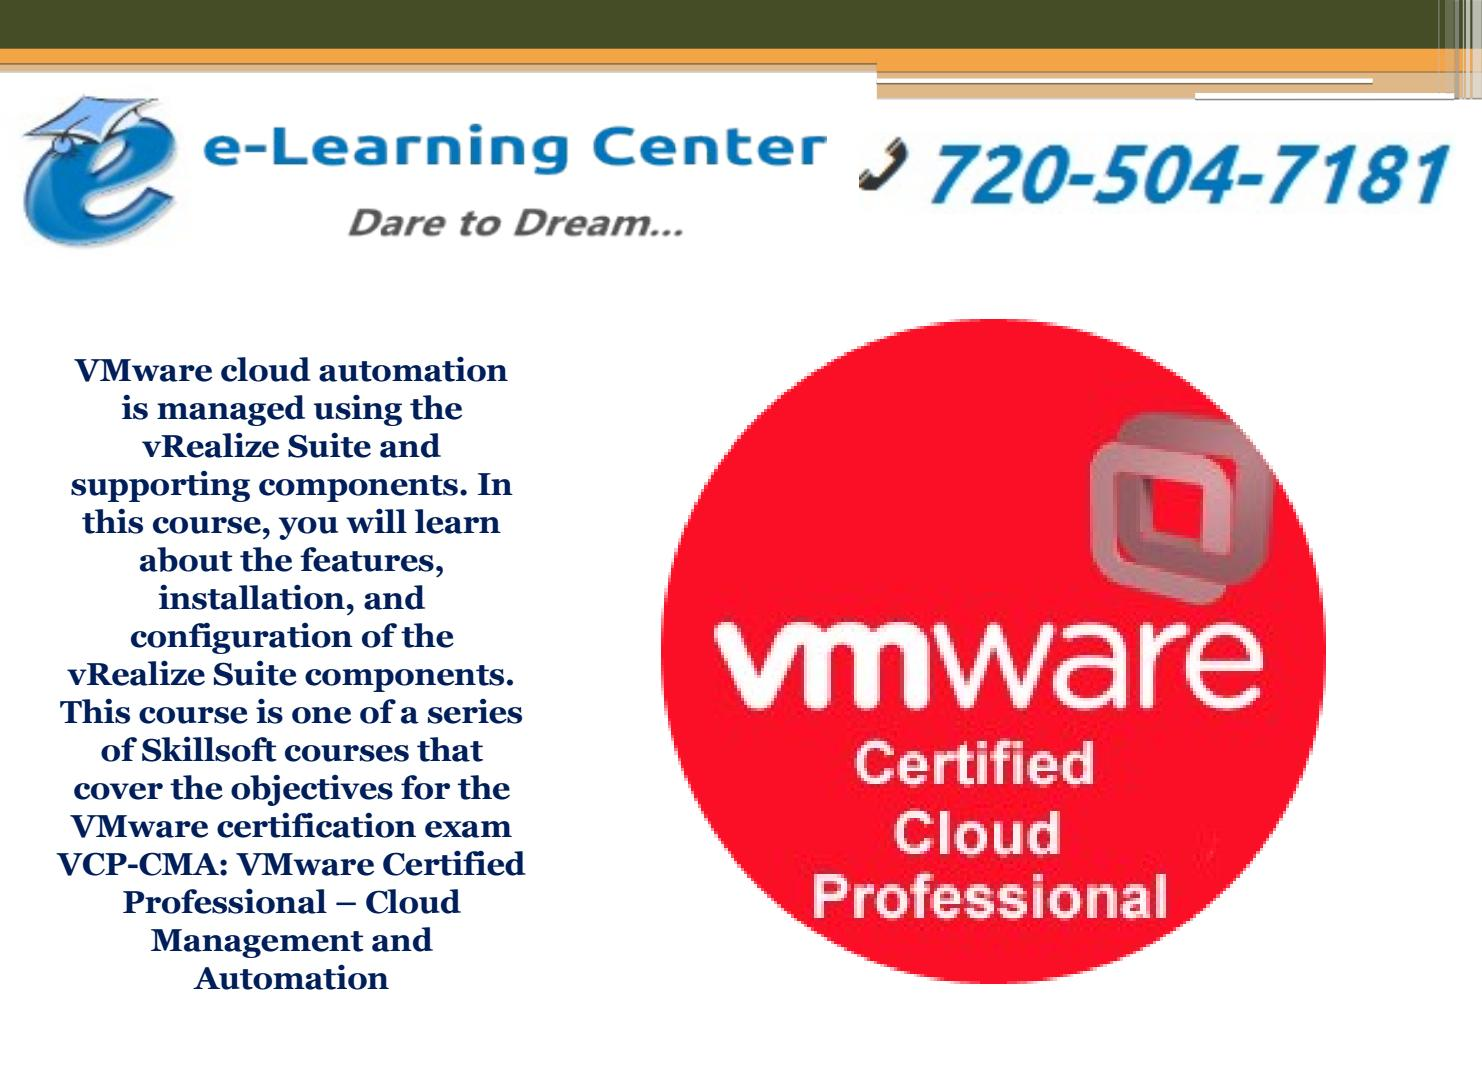 Vmware Certified Cloud Professional By E Learning Center Issuu